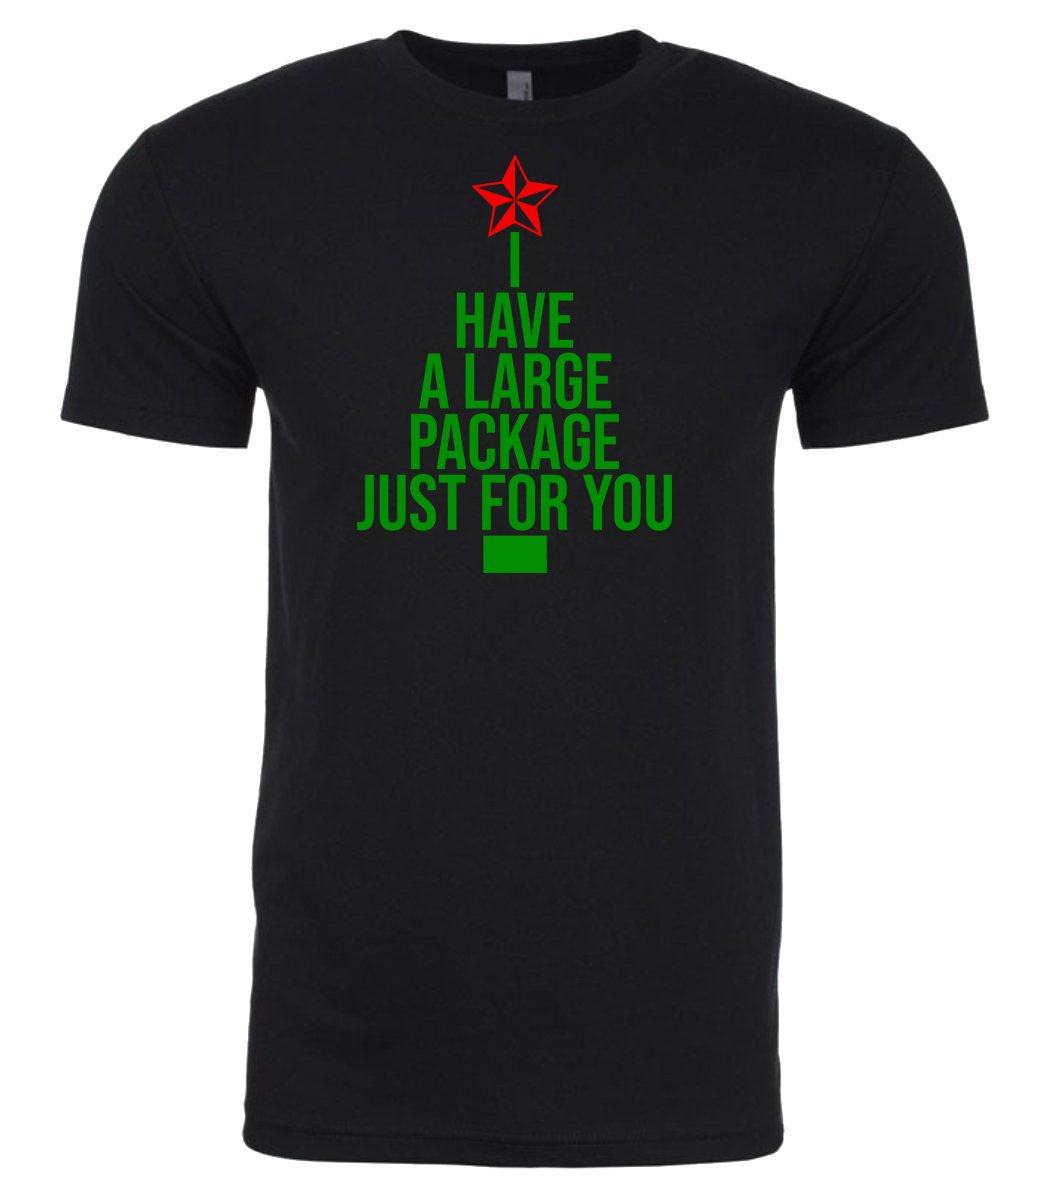 black large package Christmas t shirt for men